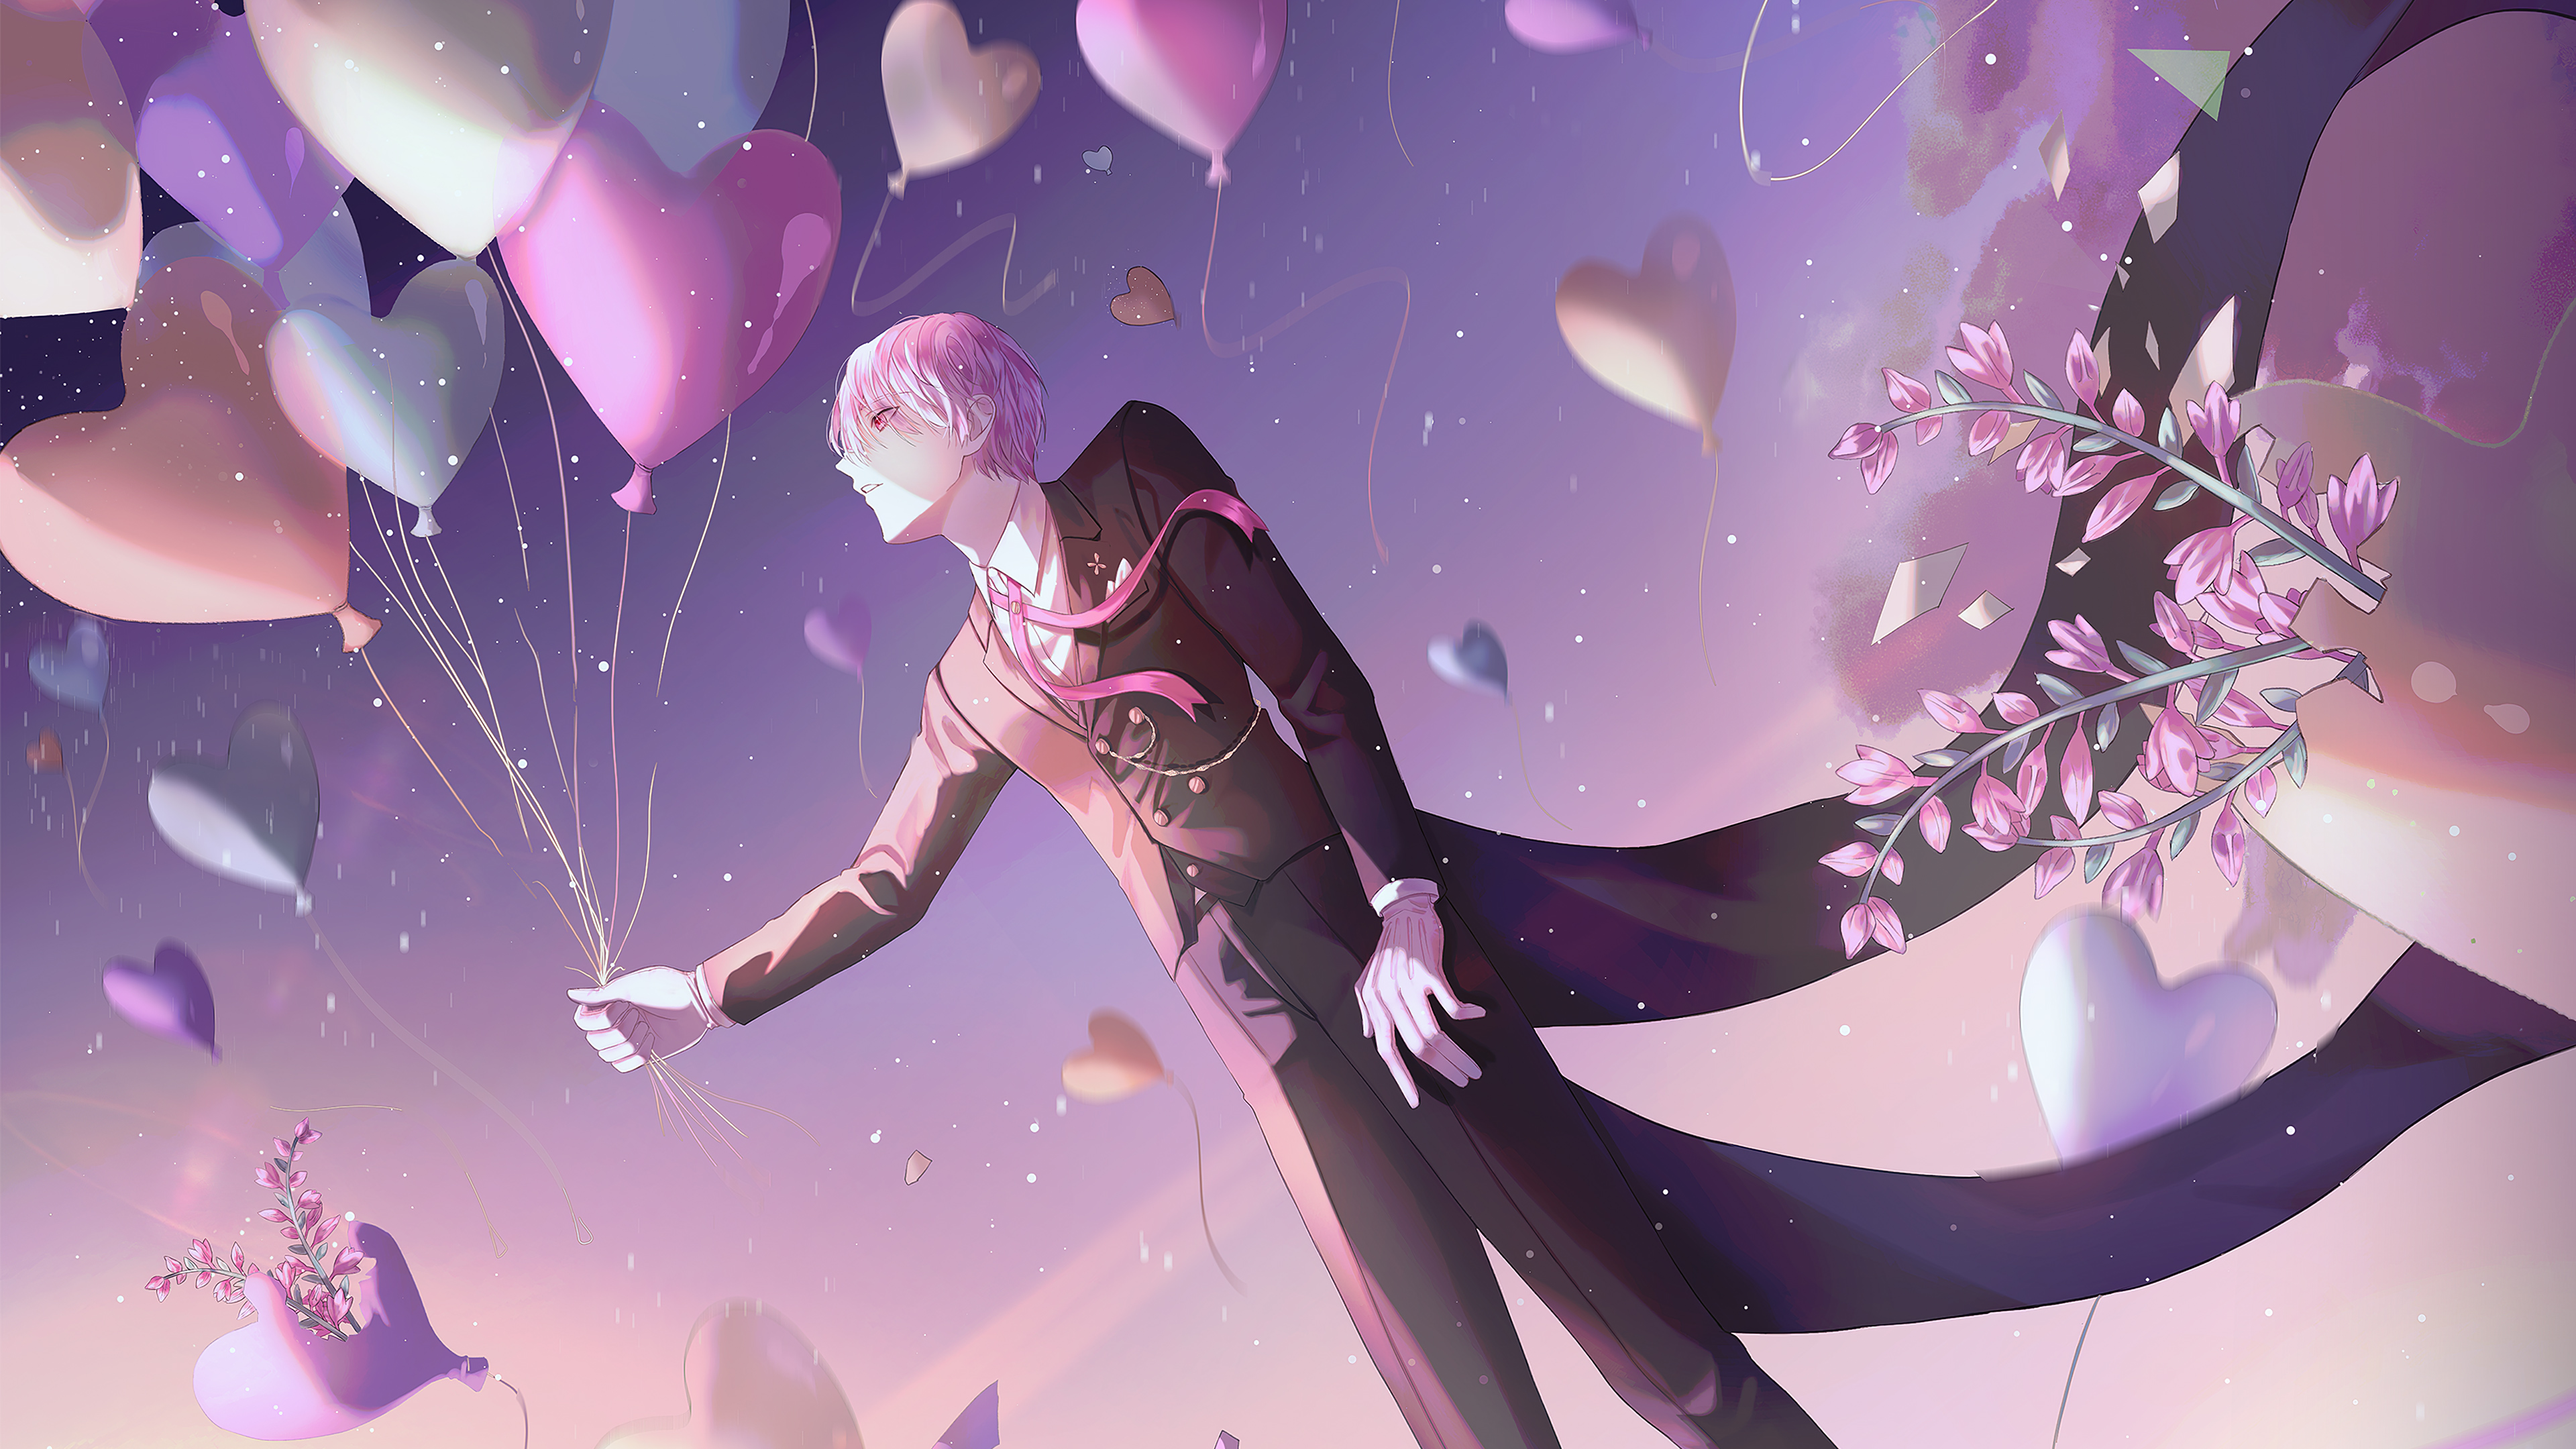 Anime Boy Balloons 4k Hd Anime 4k Wallpapers Images Backgrounds Photos And Pictures